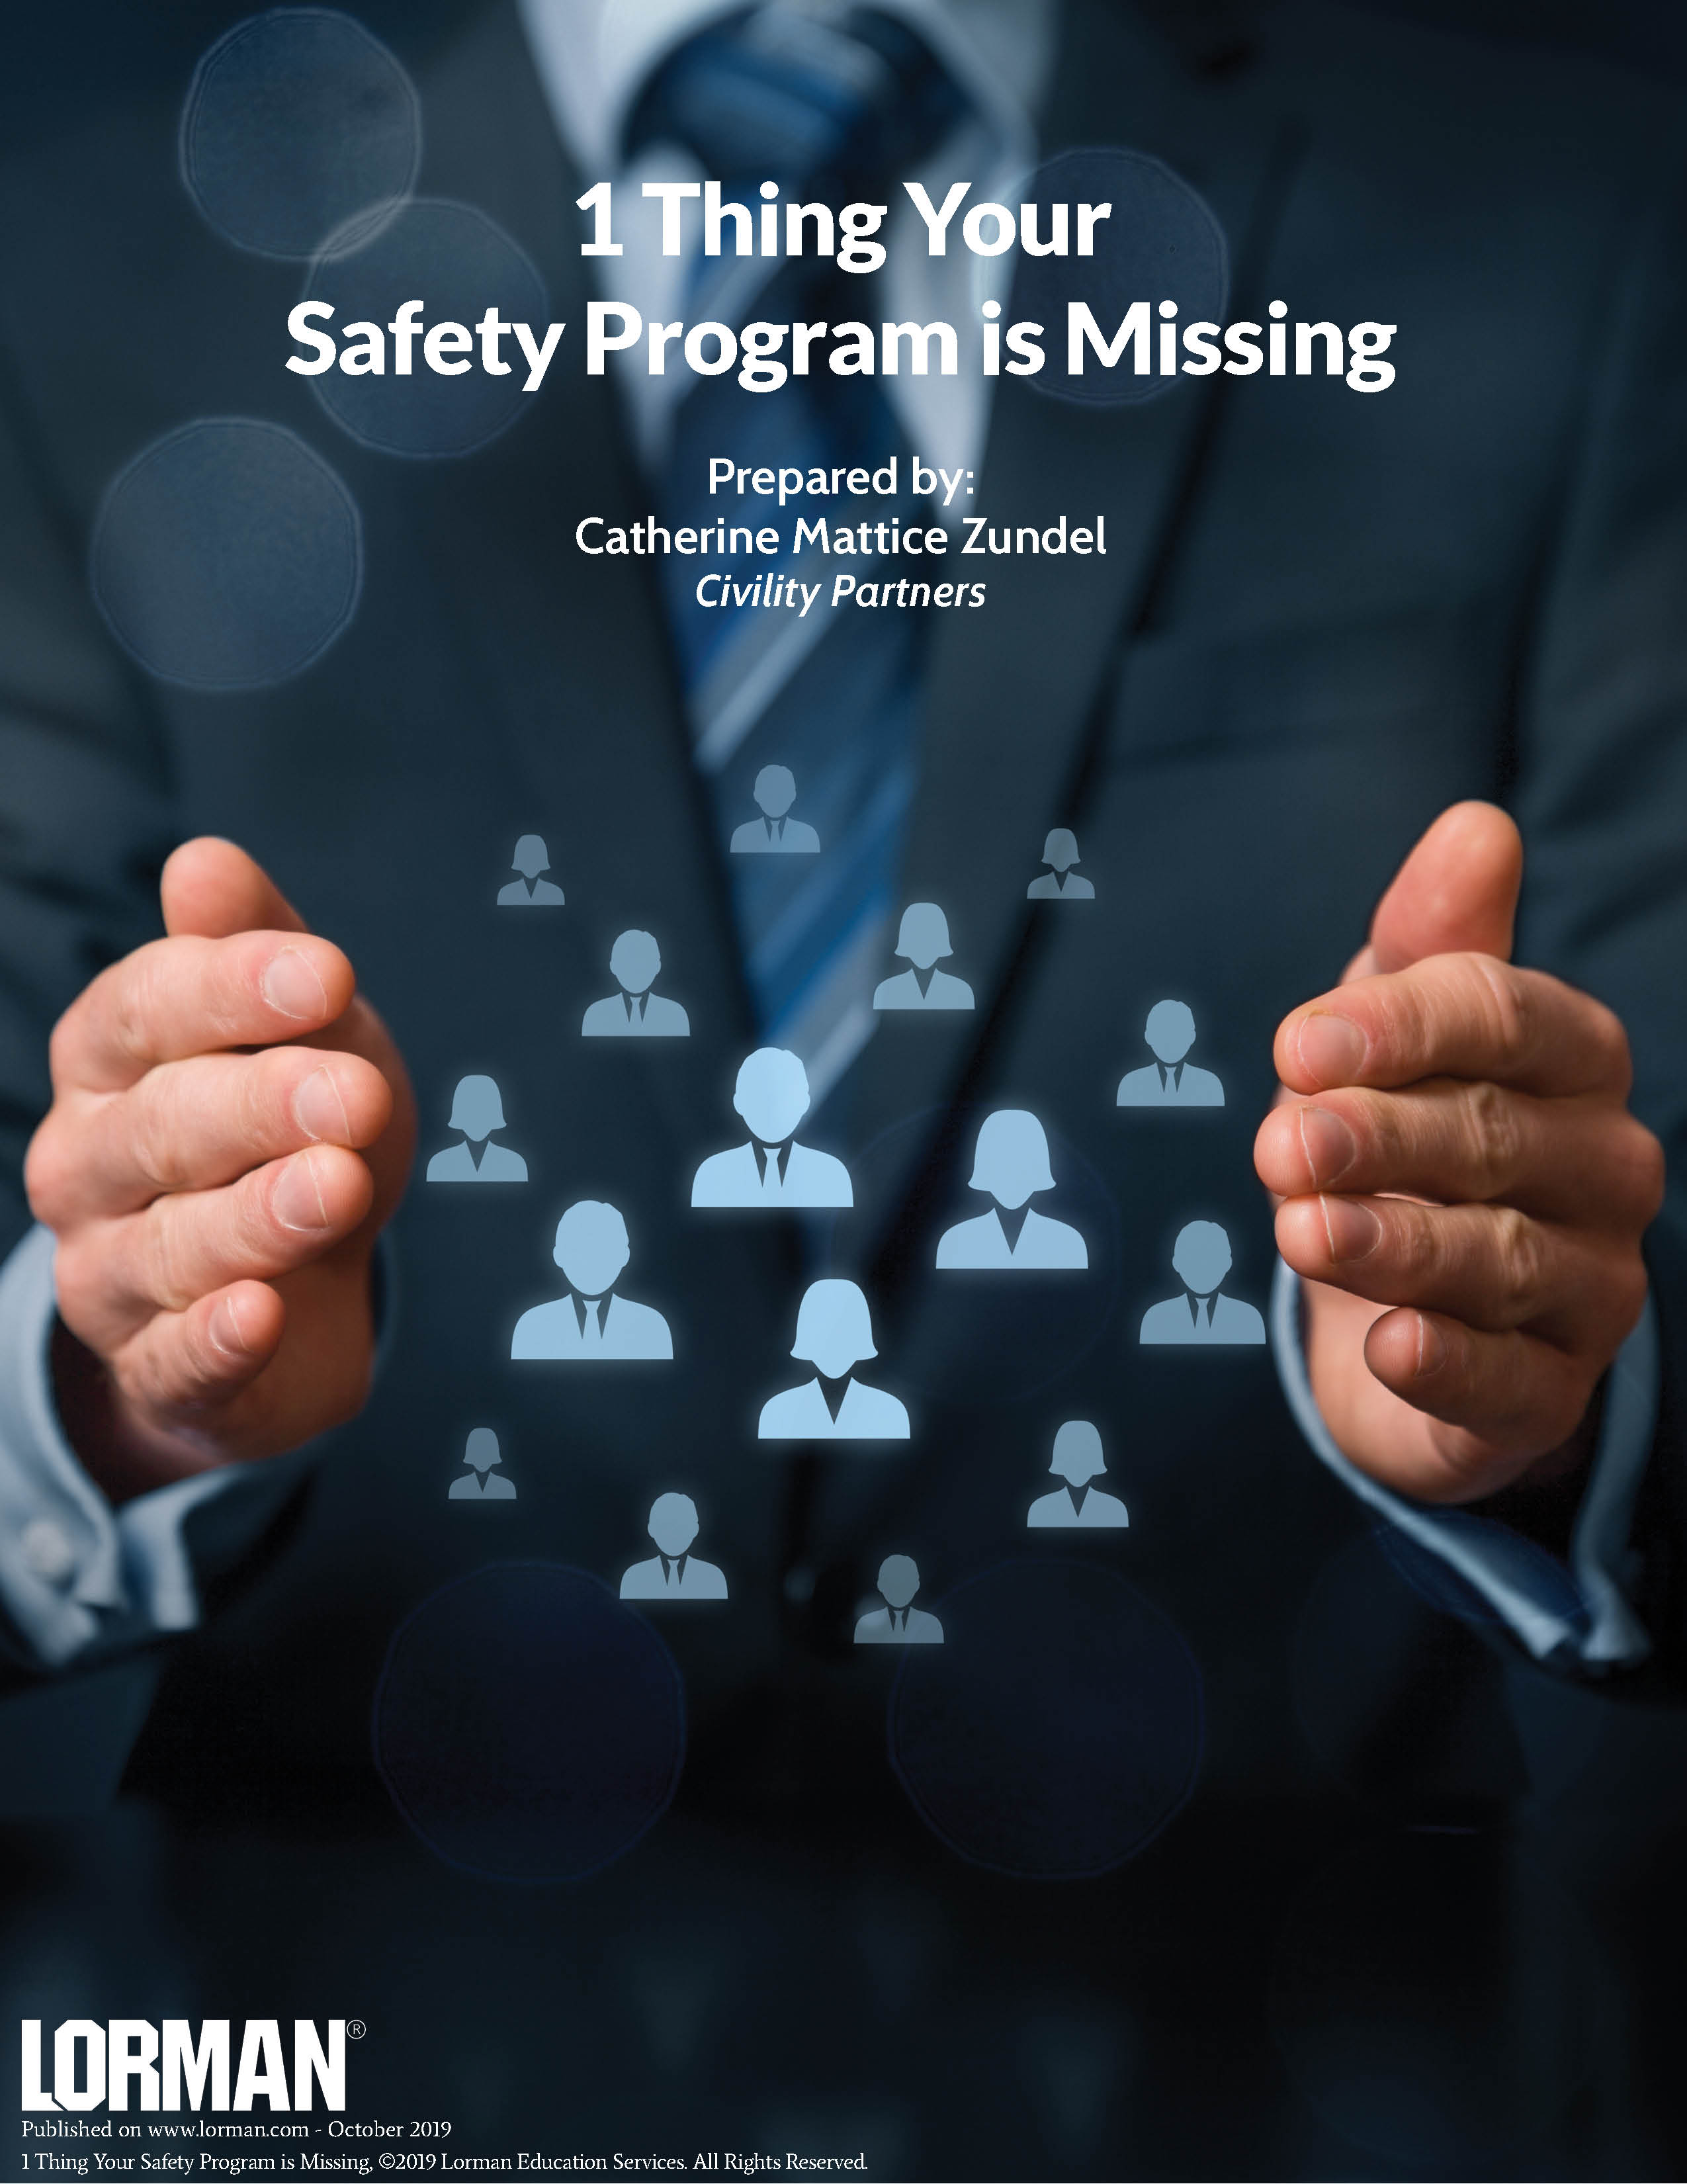 1 Thing Your Safety Program is Missing